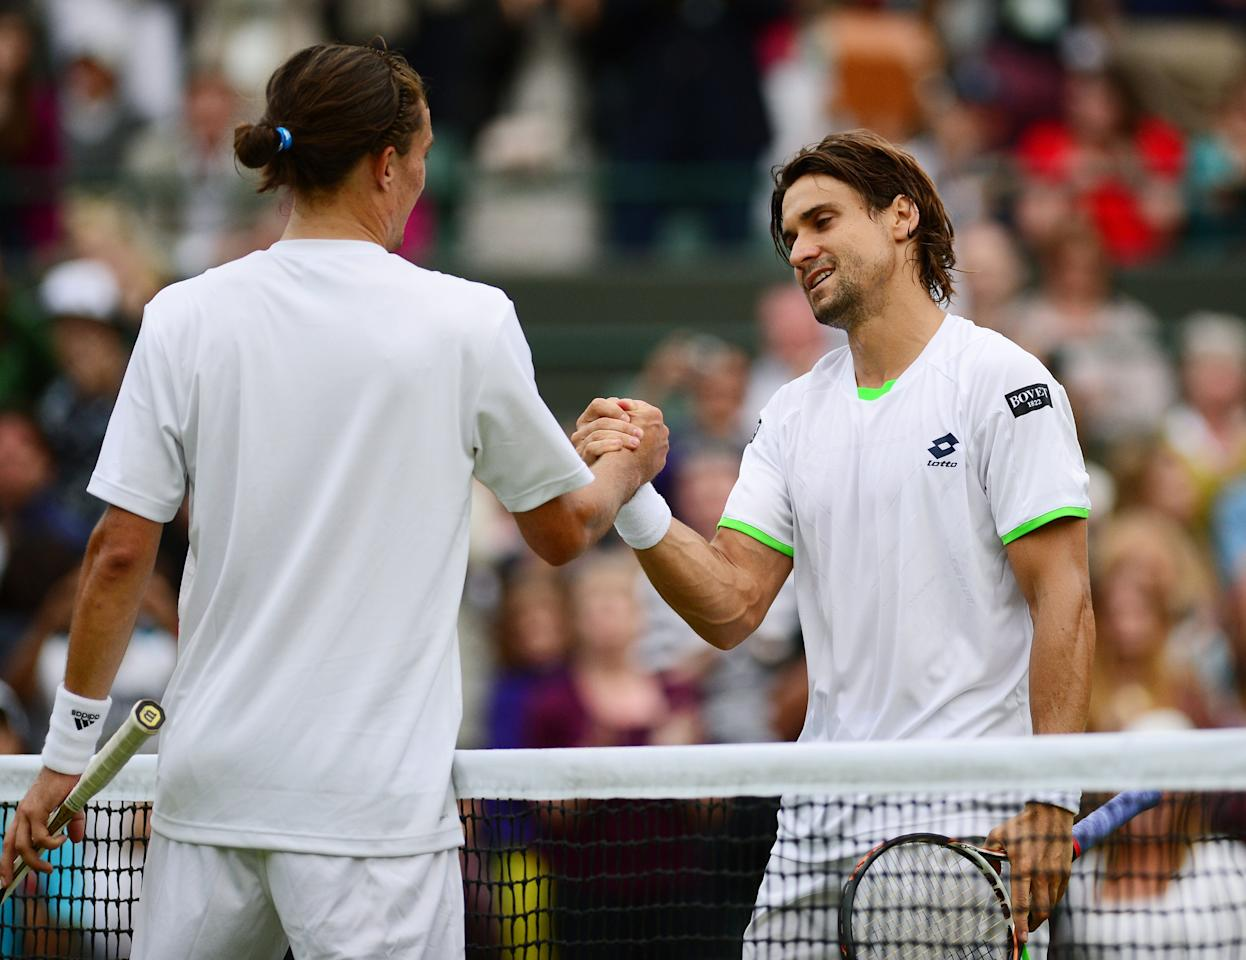 LONDON, ENGLAND - JUNE 29: David Ferrer of Spain shakes hands at the net with Alexandr Dolgopolov of Ukraine during the Gentlemen's Singles third round match on day six of the Wimbledon Lawn Tennis Championships at the All England Lawn Tennis and Croquet Club on June 29, 2013 in London, England. (Photo by Mike Hewitt/Getty Images)